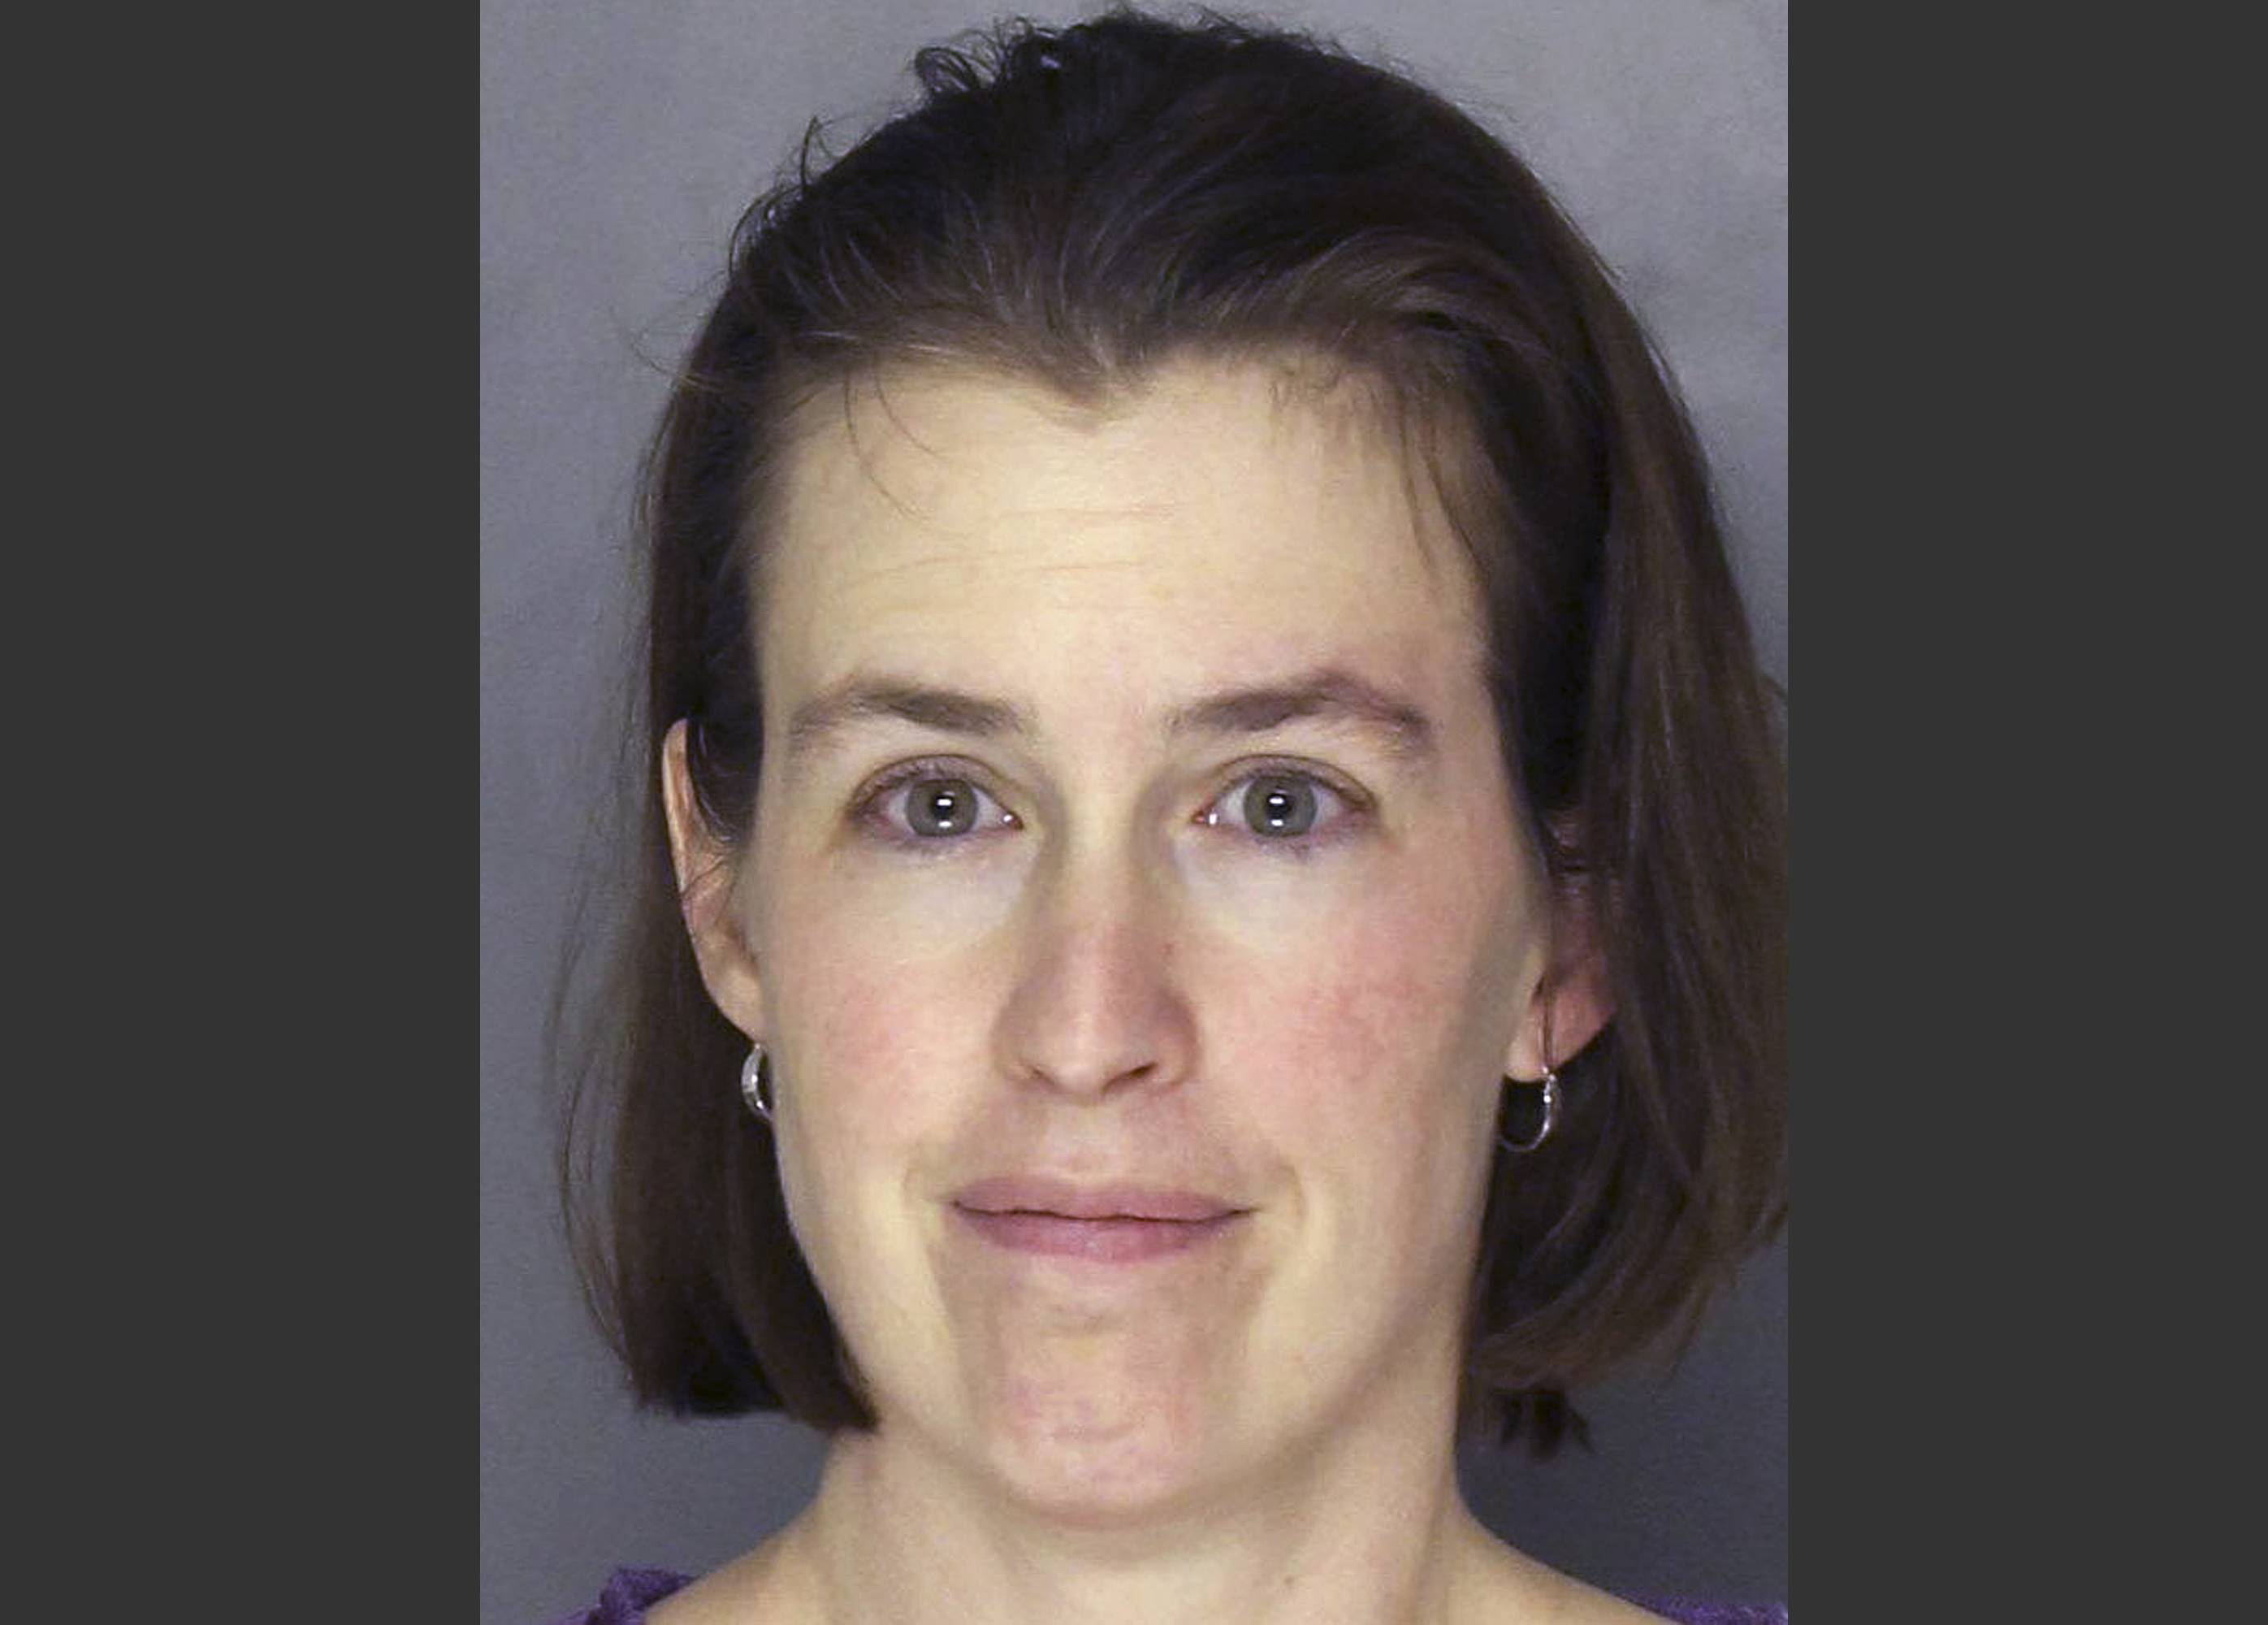 Laurel Michelle Schlemmer is charged with drowning her 3-year-old son and leaving his 6-year-old brother in critical condition Tuesday, April 1 after she allegedly pushed the boys underwater in a bathtub, then sat on them at their McCandless, Pa. home.